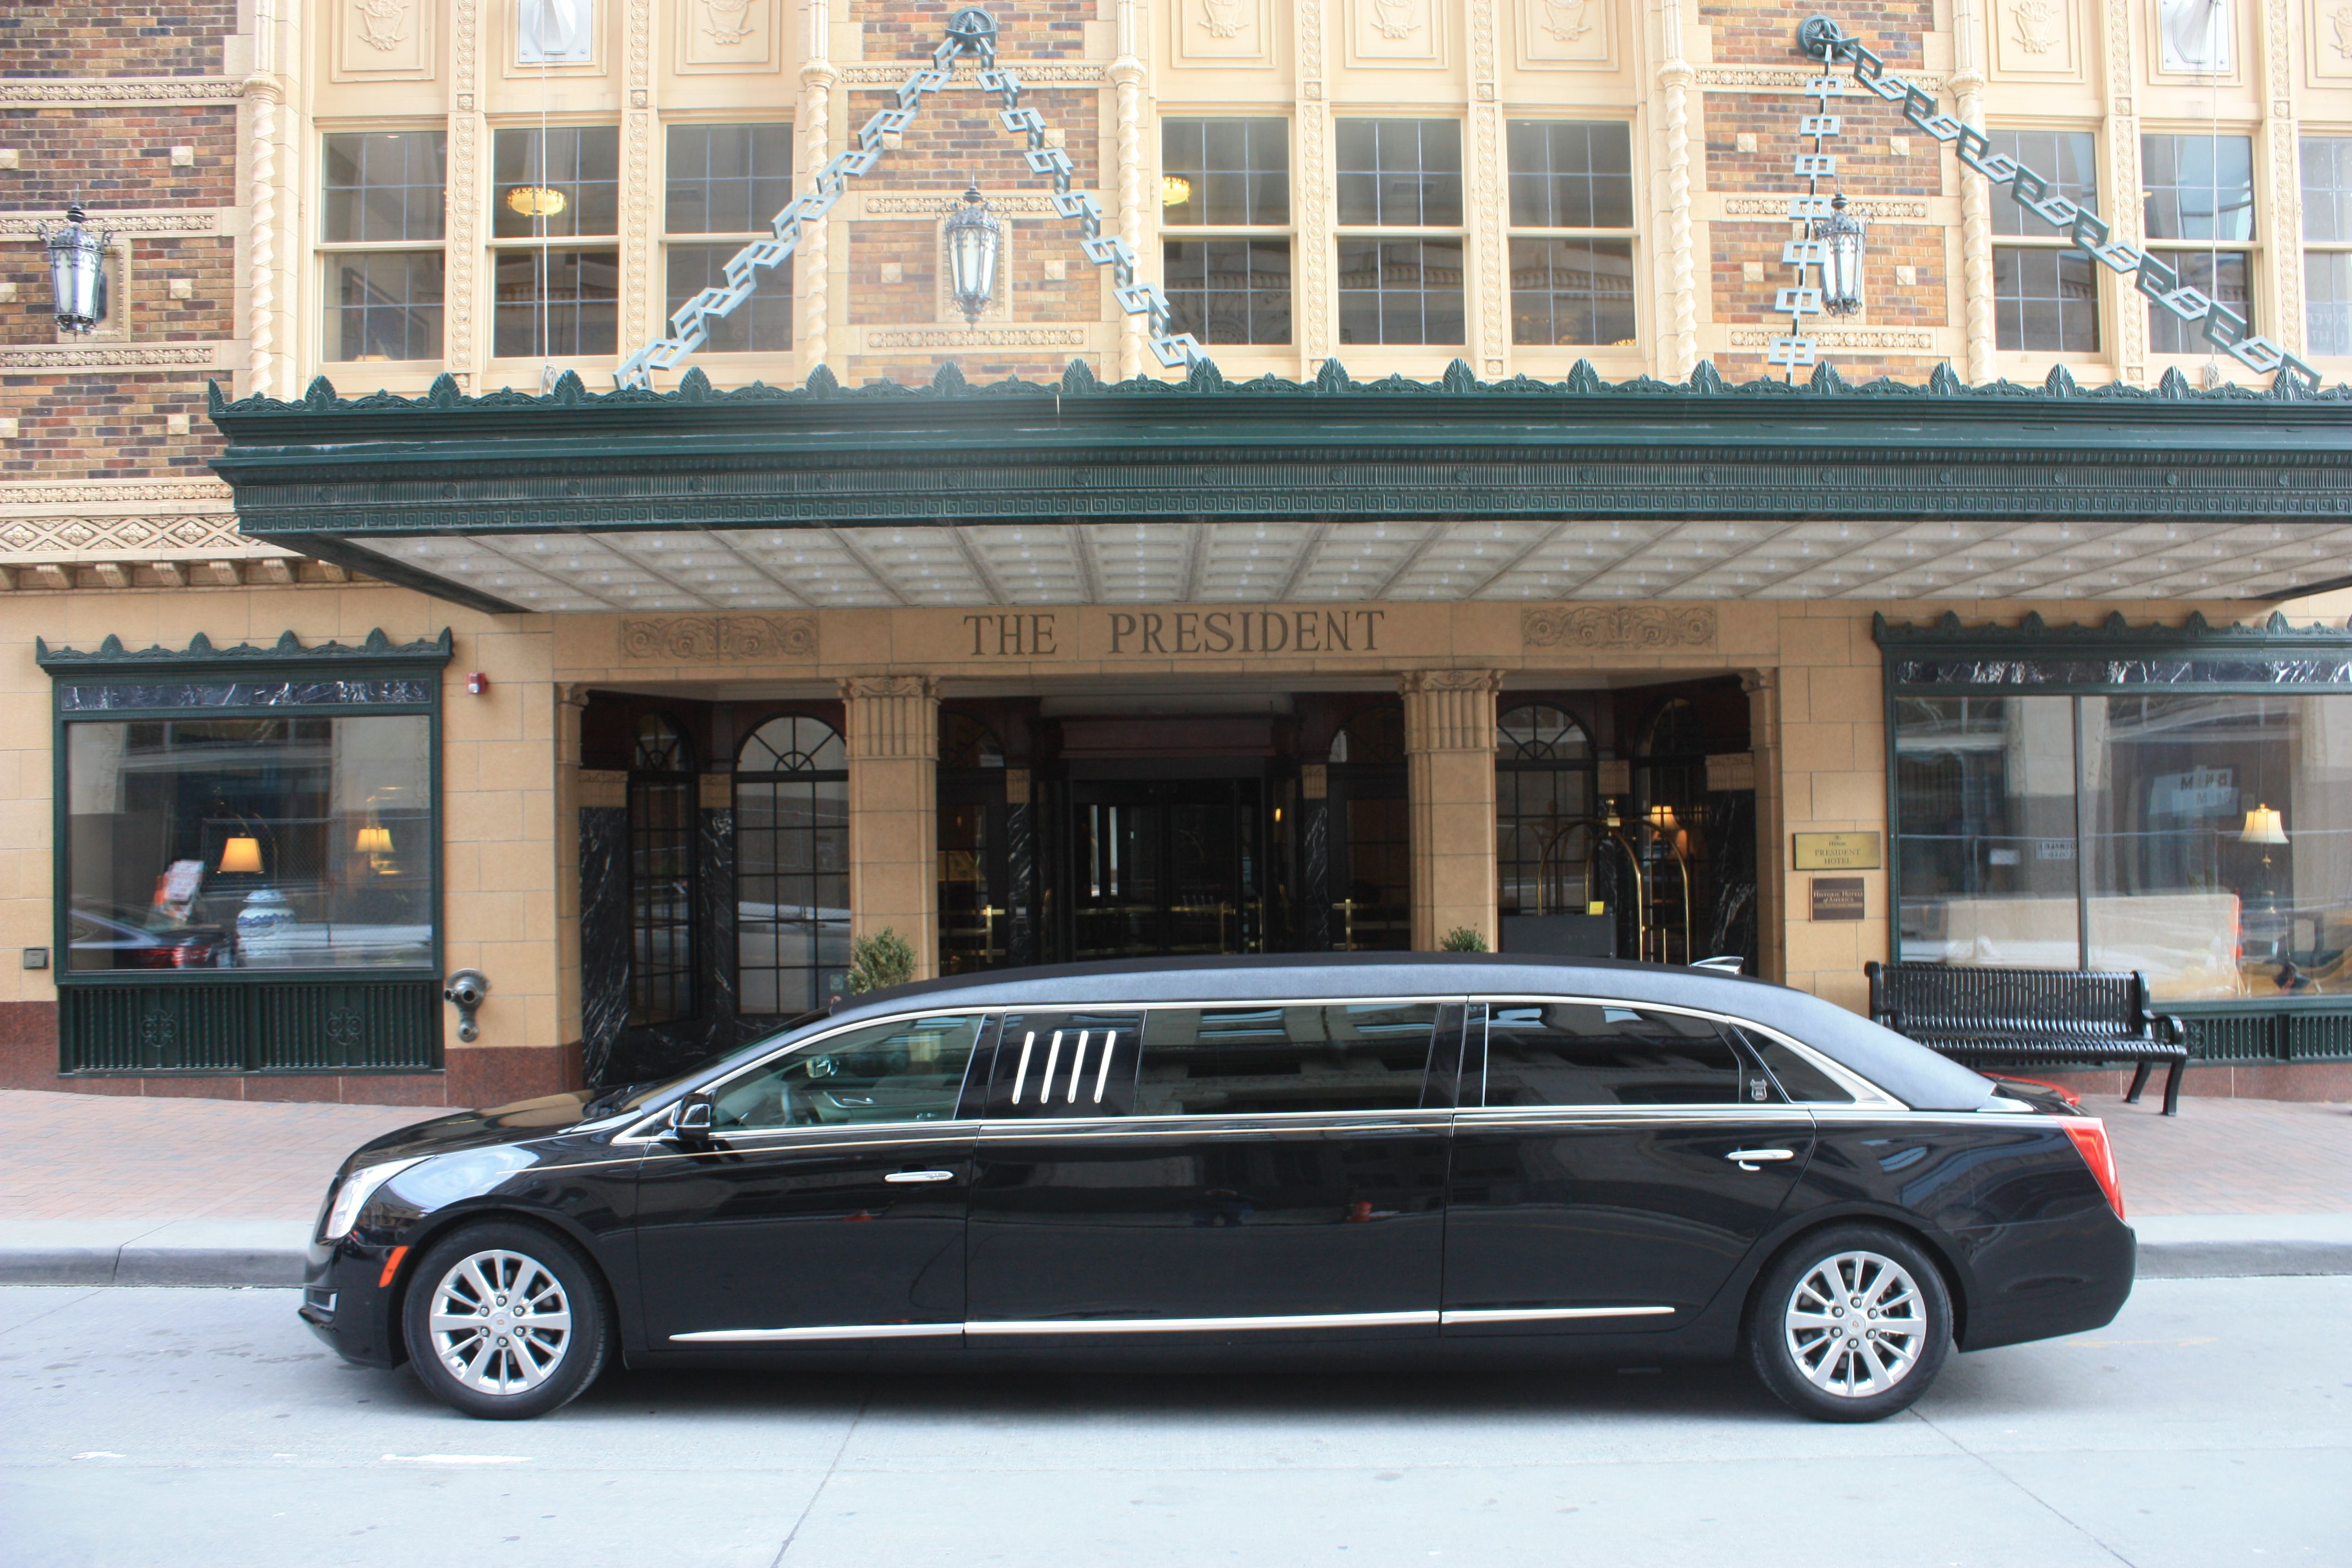 2016 cadillac xts-70 limousinearmbruster-stageway   limousines